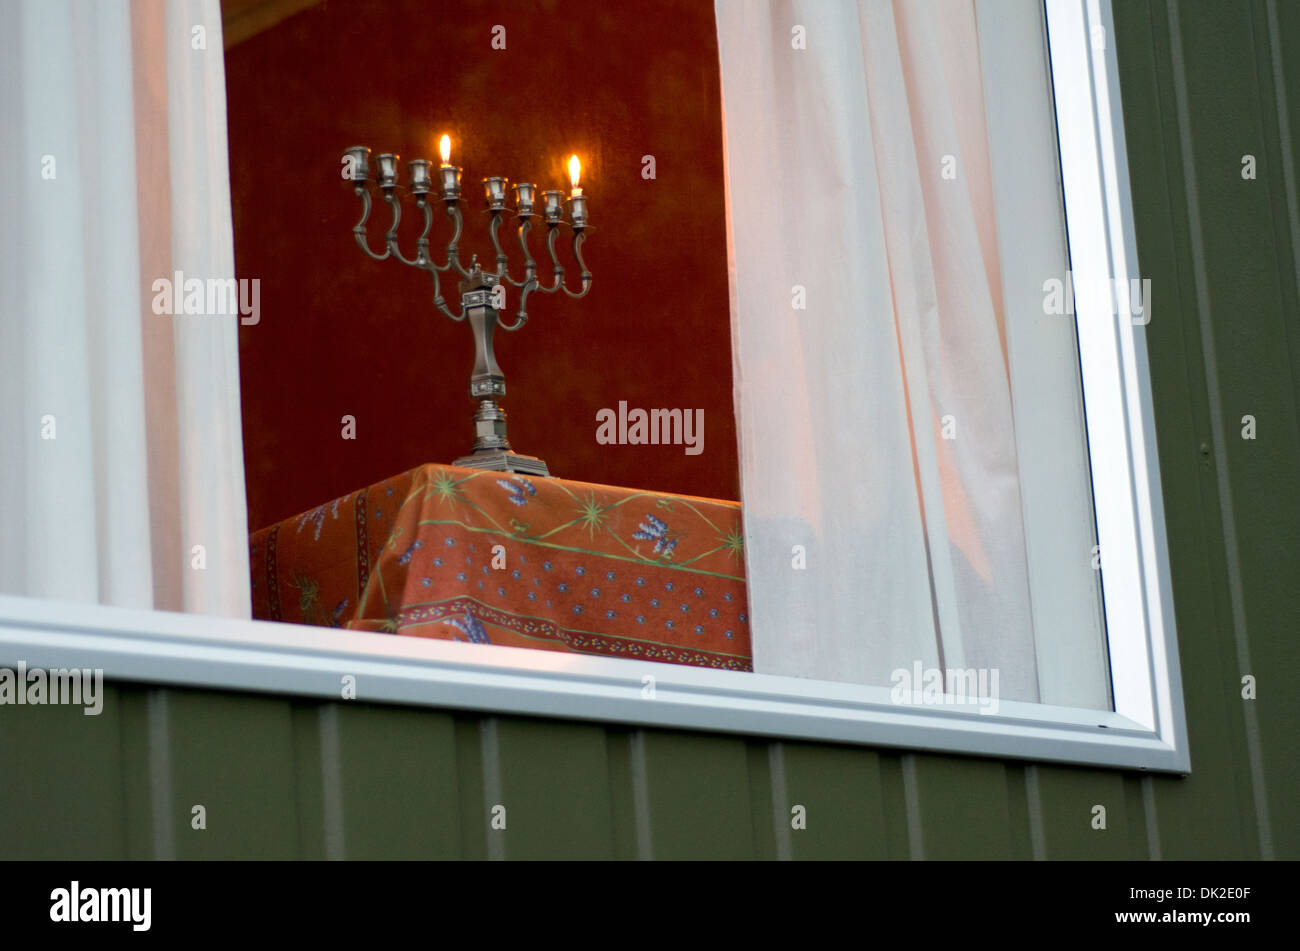 Hanukkah menorah with two burning candles on the fist day of Hanukkah Stock Photo